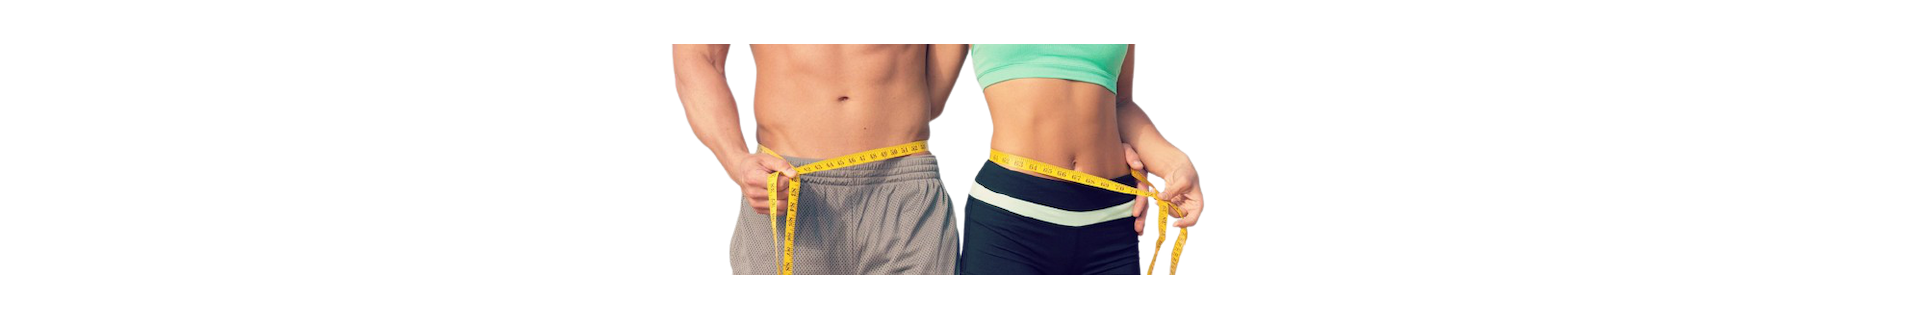 anti-cellulite and slimming boosters